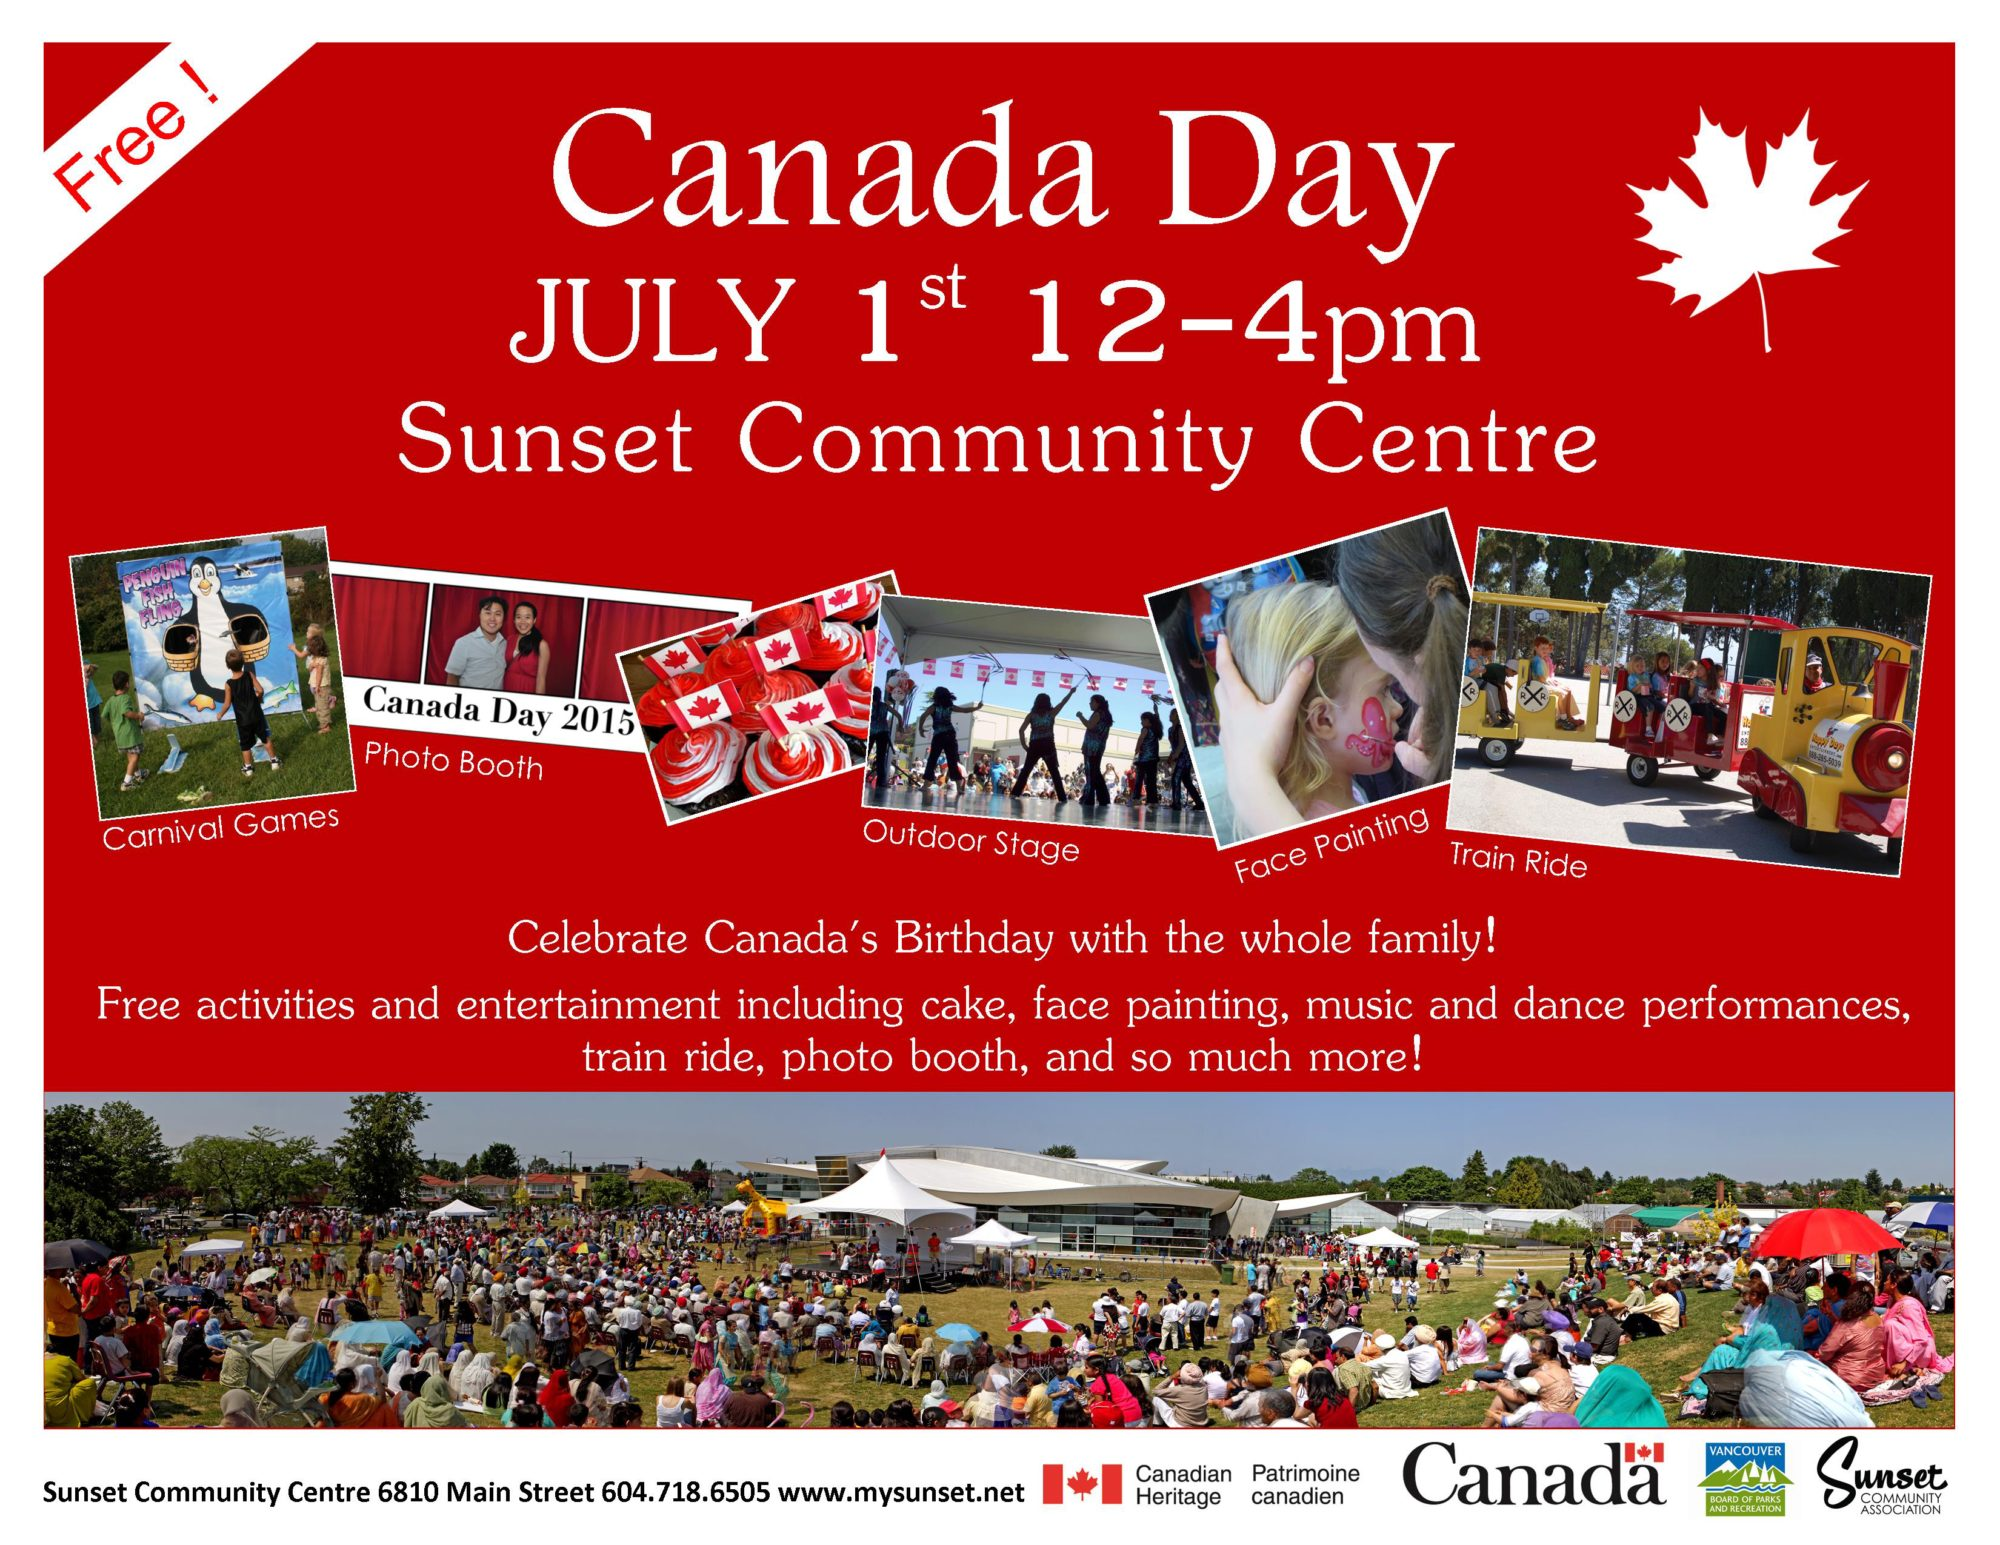 Canada Day Event at Sunset Community Centre